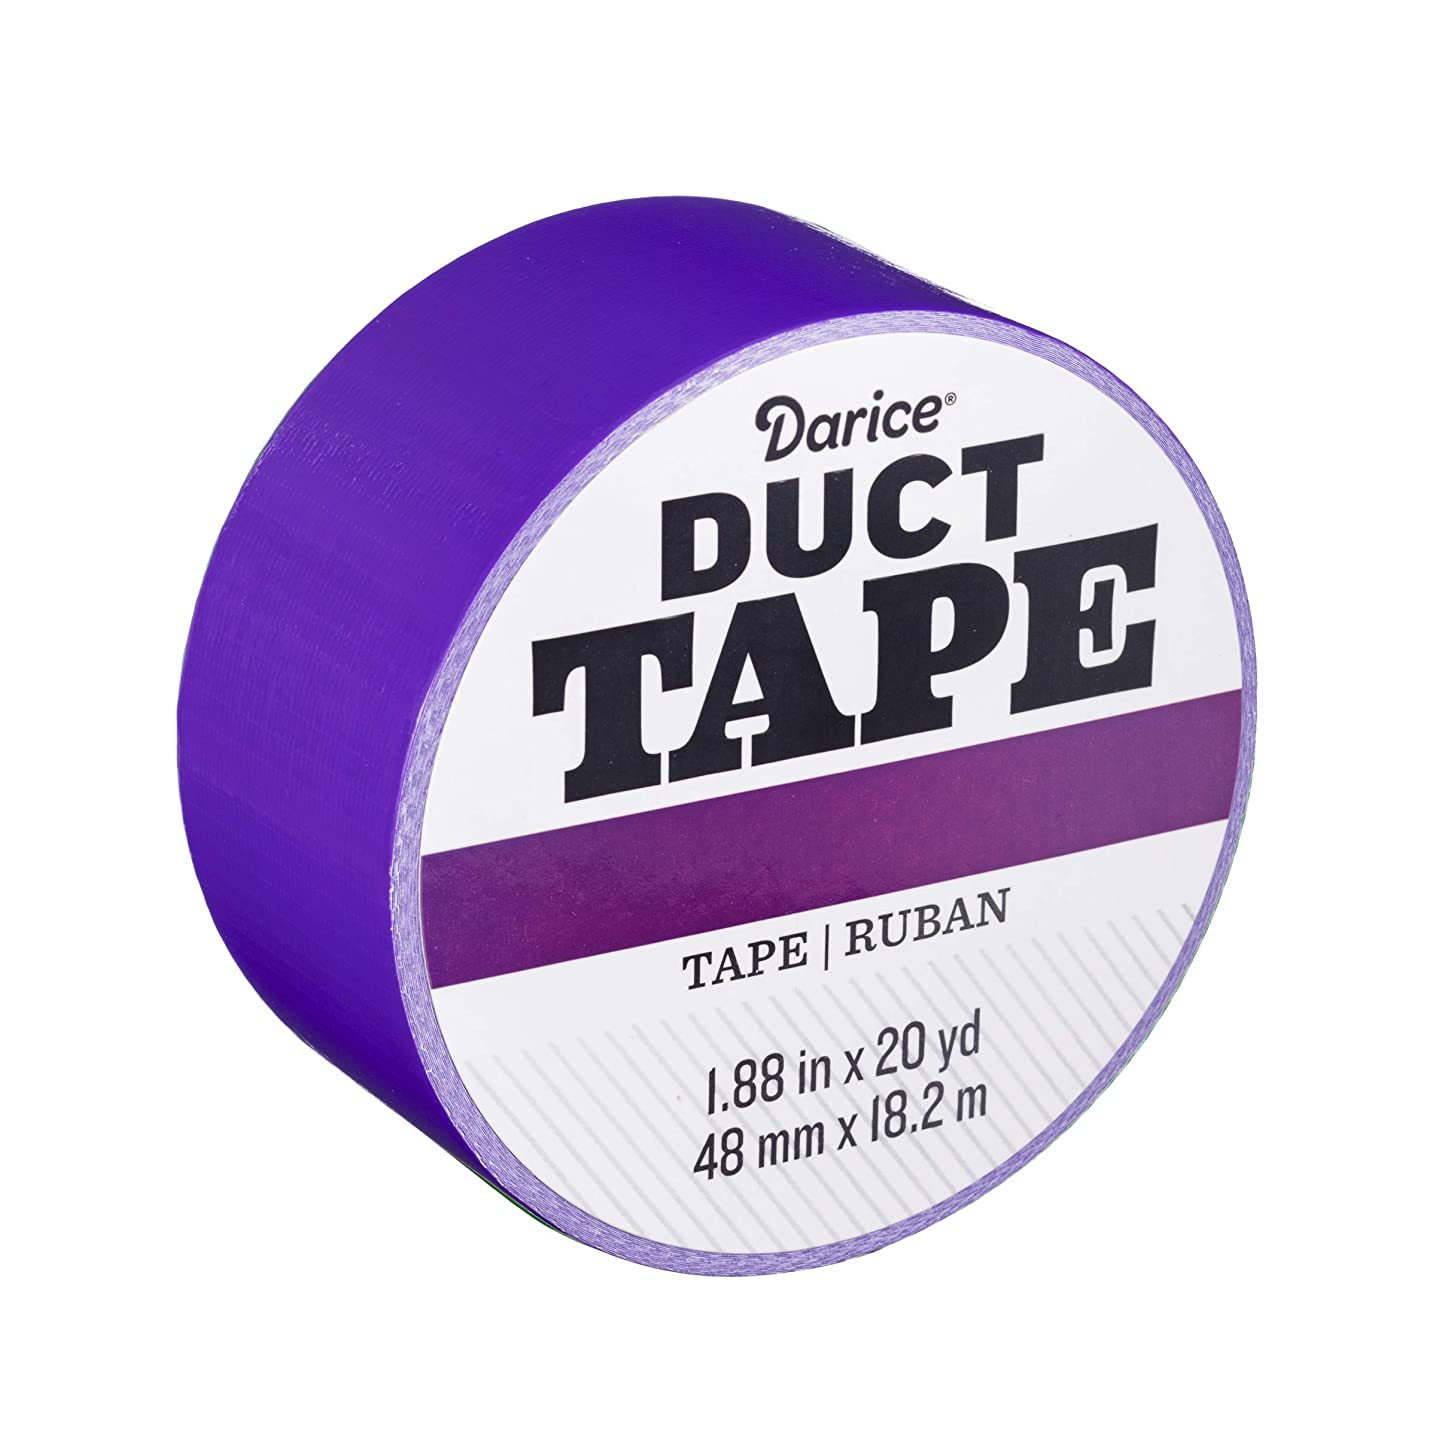 Darice 30079654 Roll: Violet Purple, 1.88 Inches x 20 Yards Duct Tape, bdivndyyc